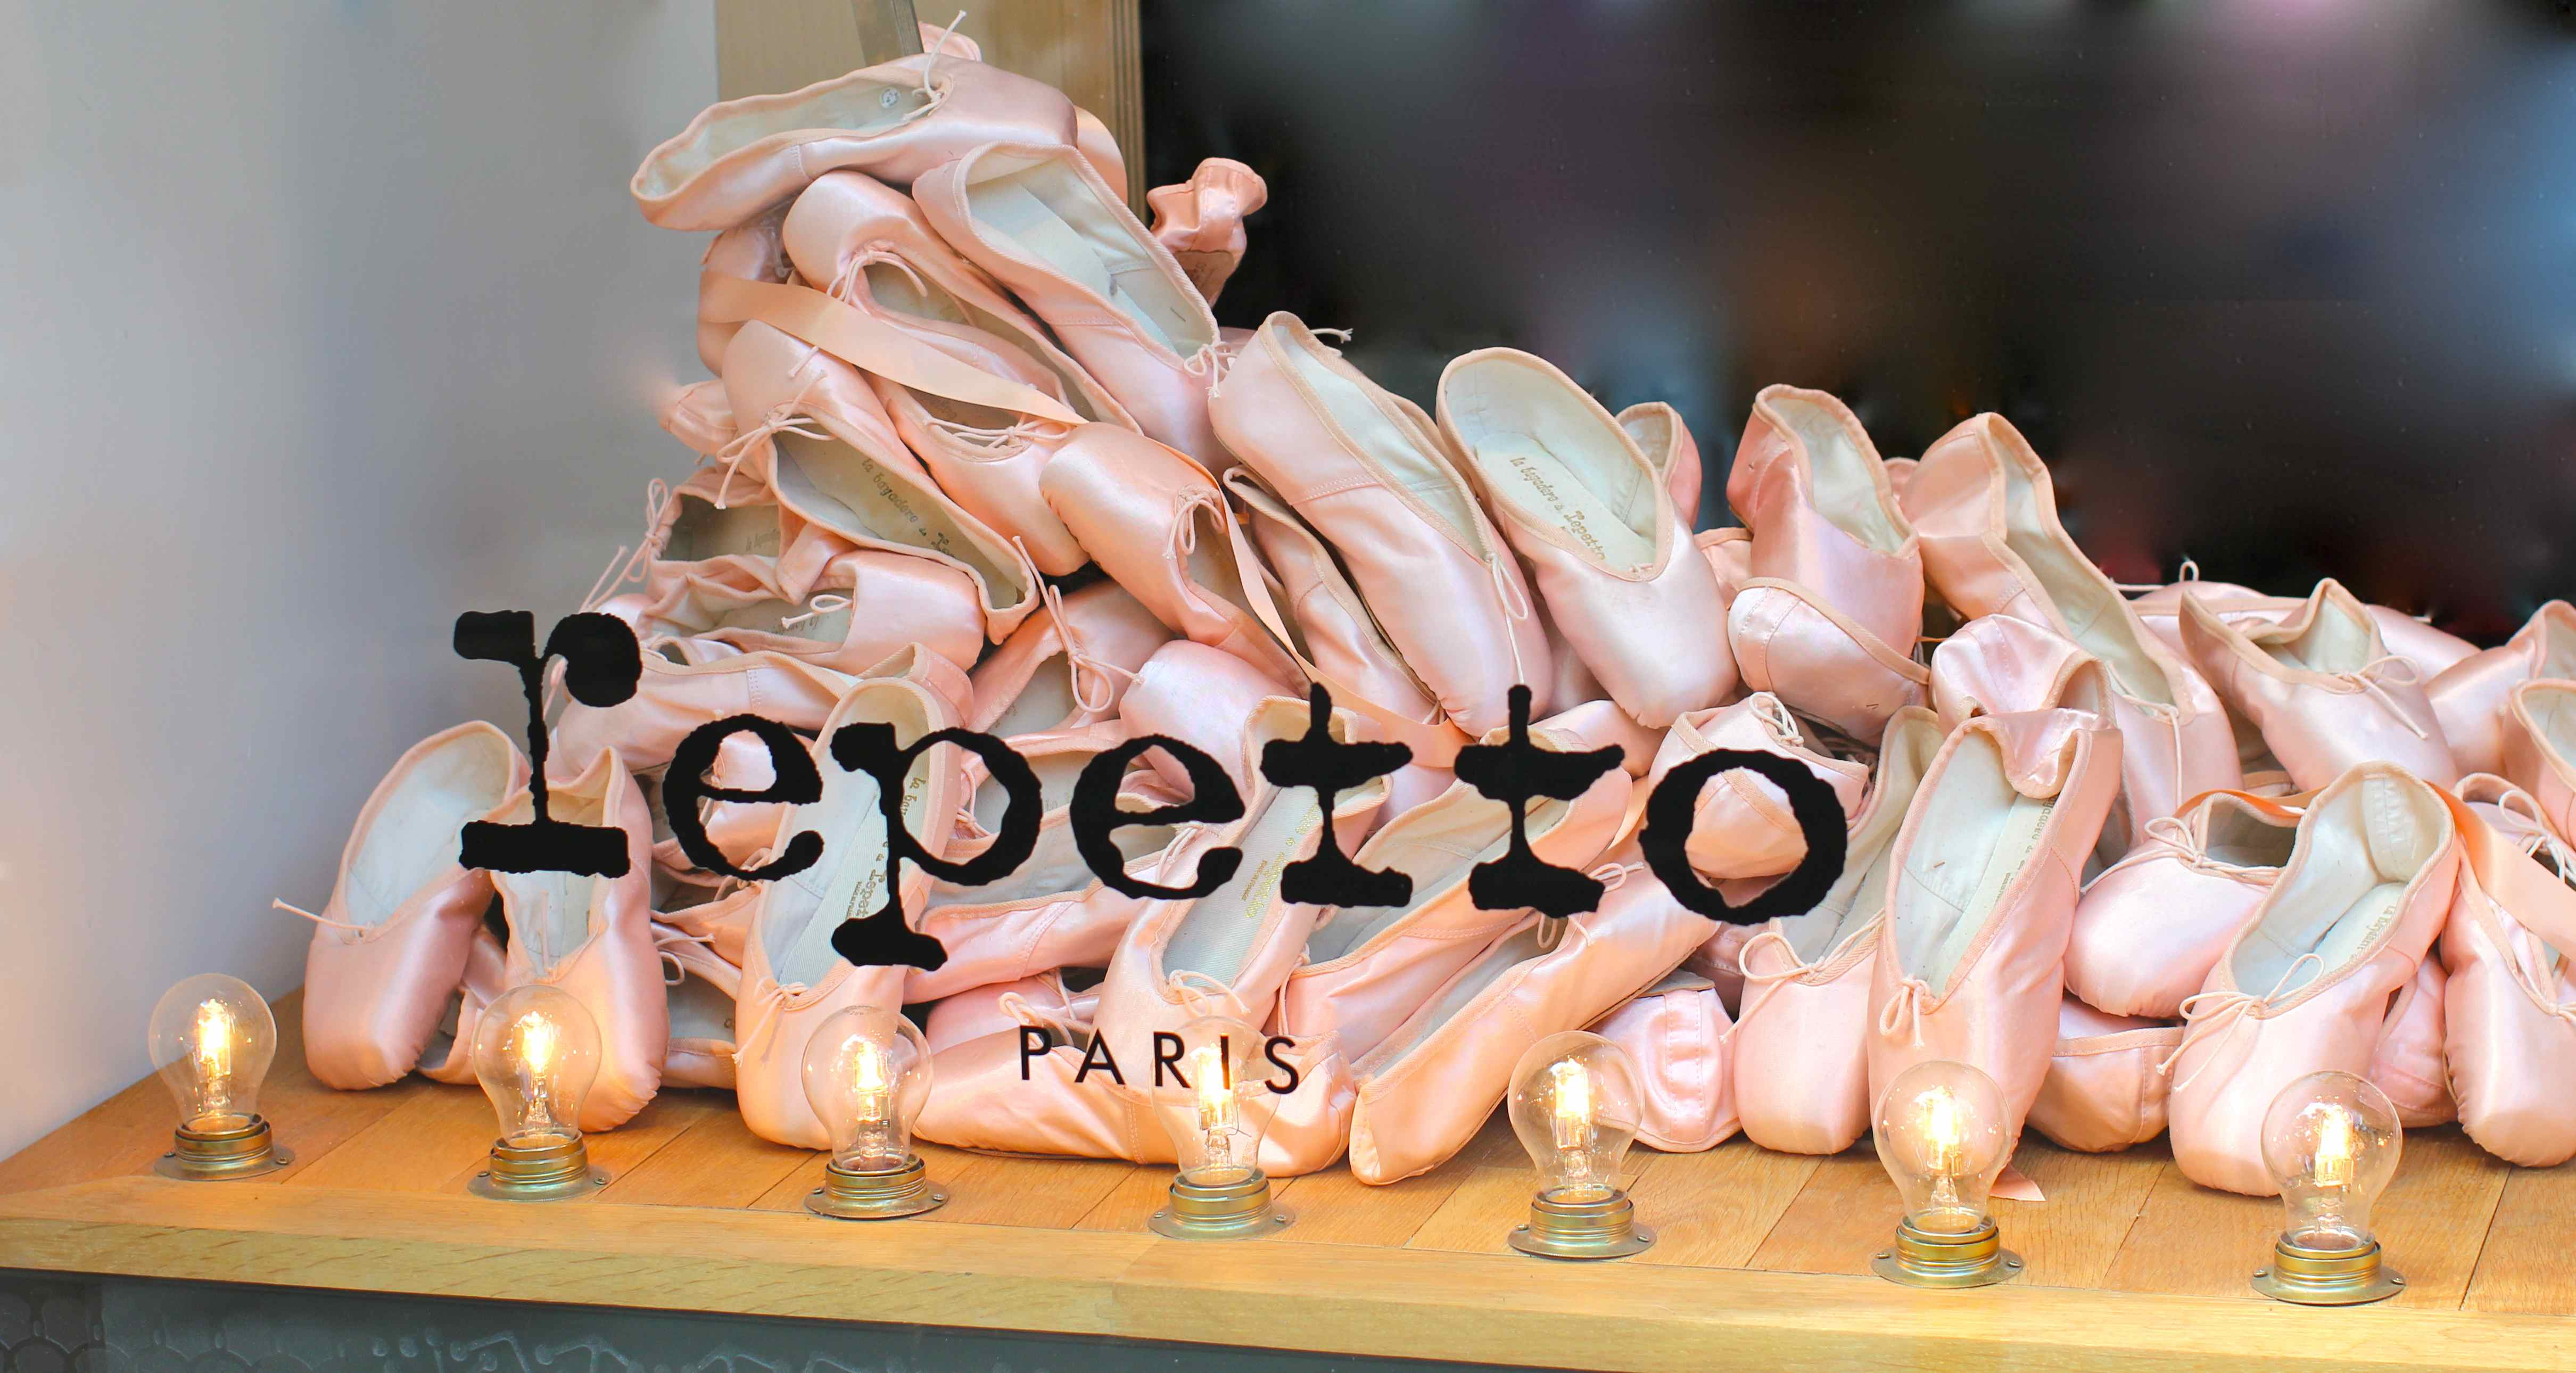 repetto store paris